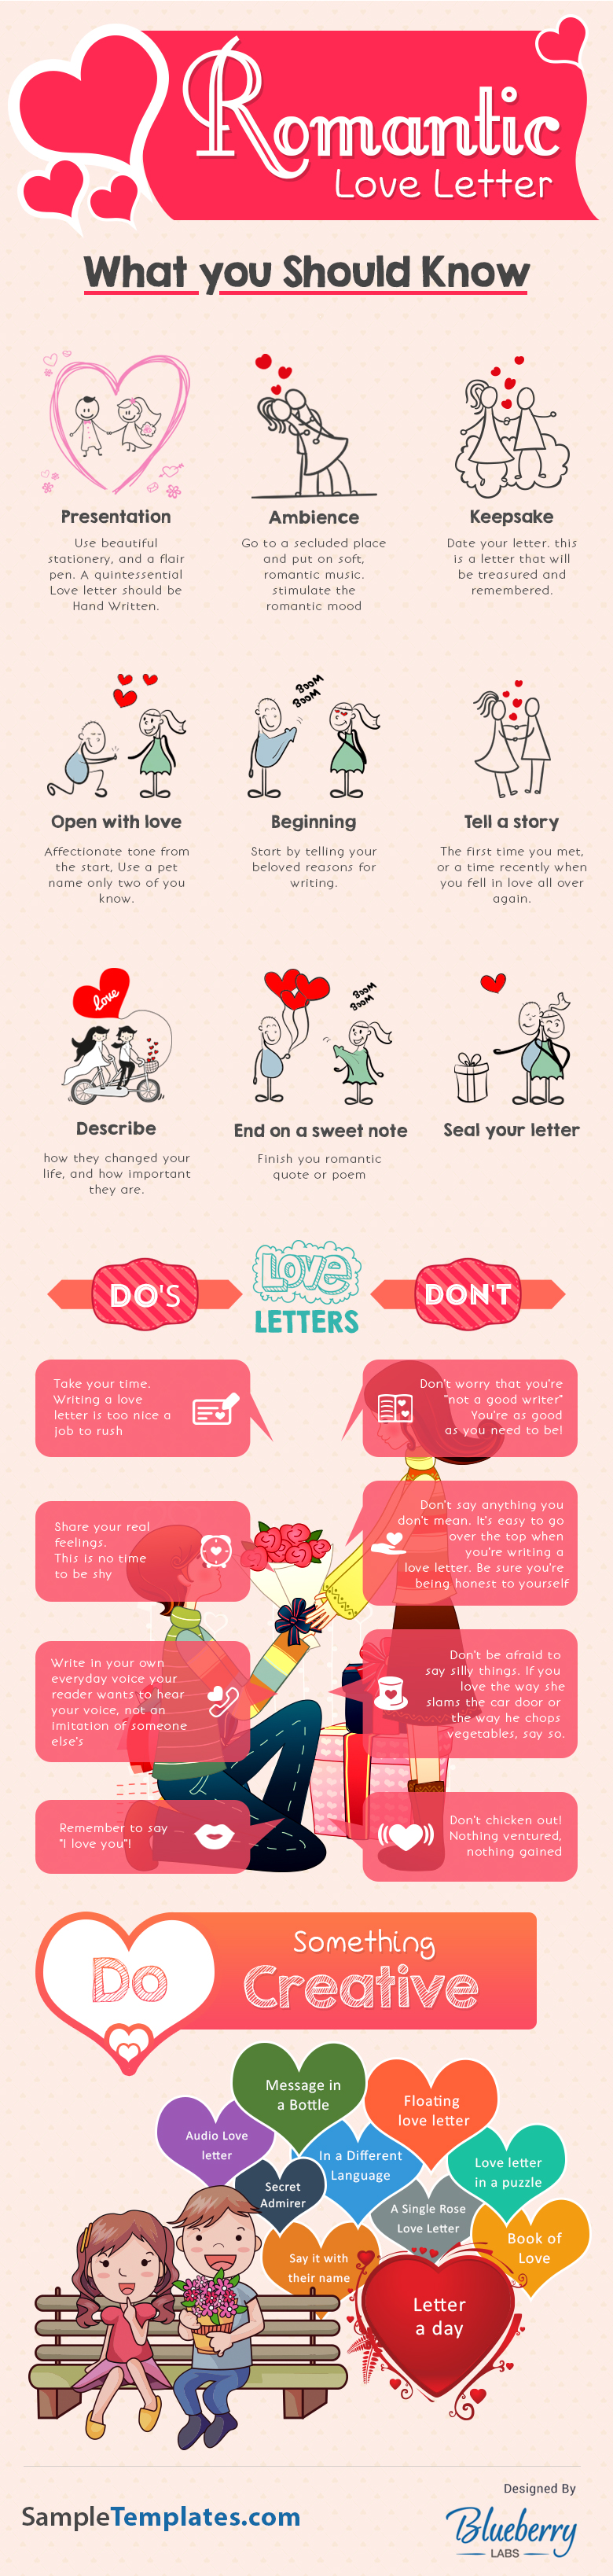 HowToWriteALoveLetter